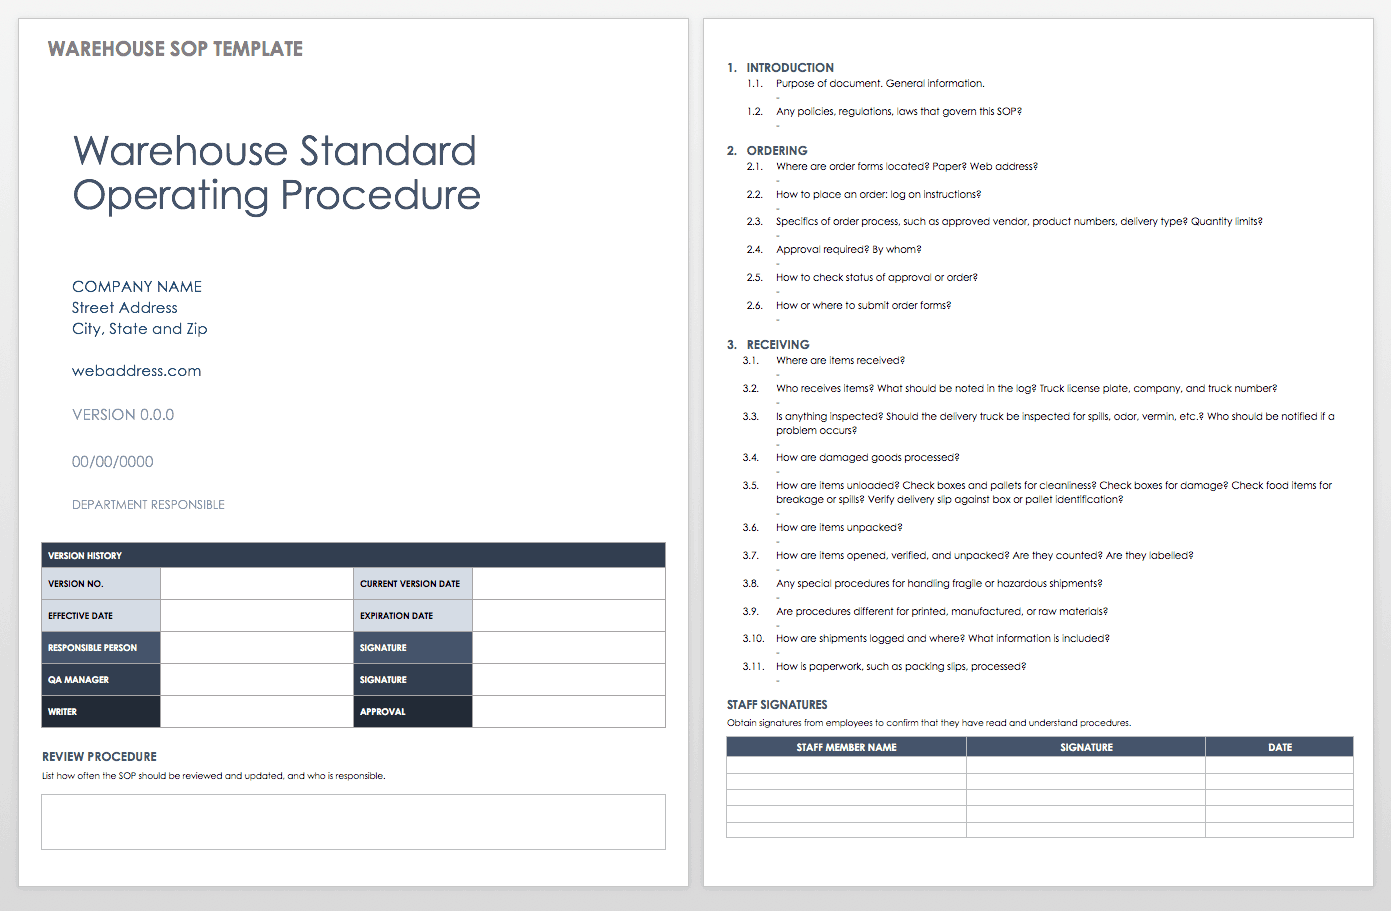 Warehouse Standard Operating Procedure Template